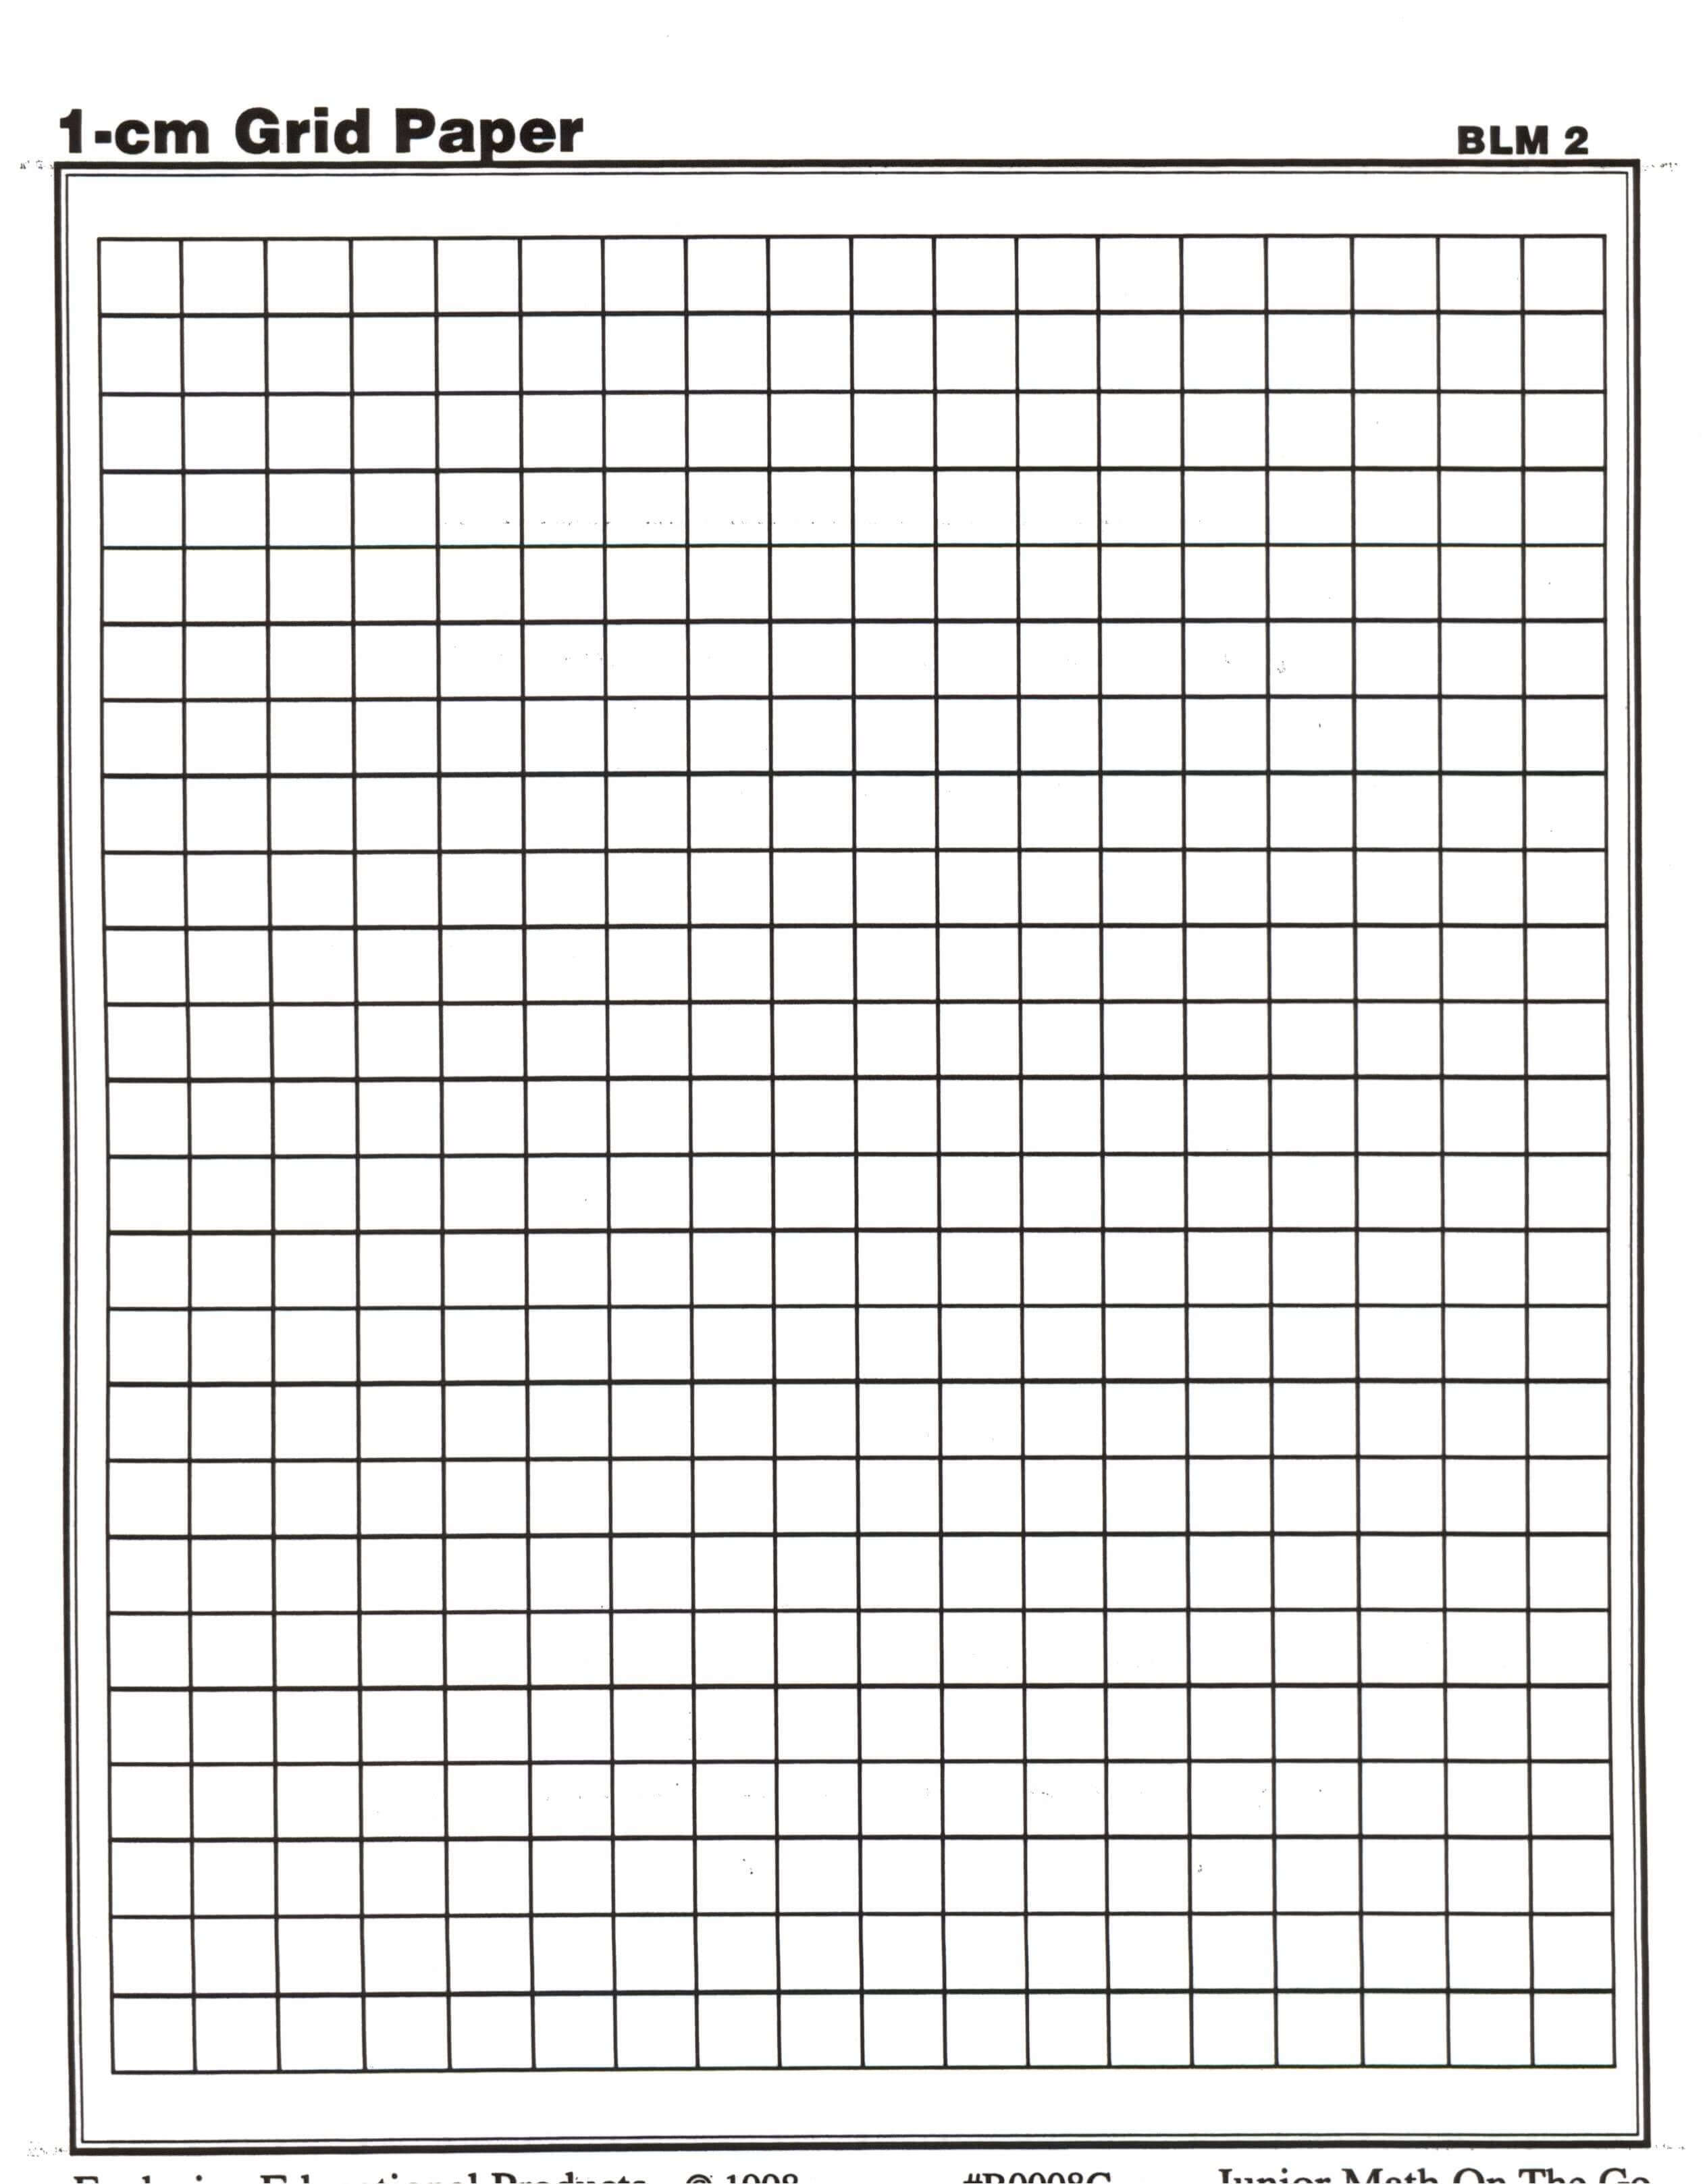 Centimeter Graph Paper | Printable Graph Paper, Graph Paper pertaining to 1 Cm Graph Paper Template Word